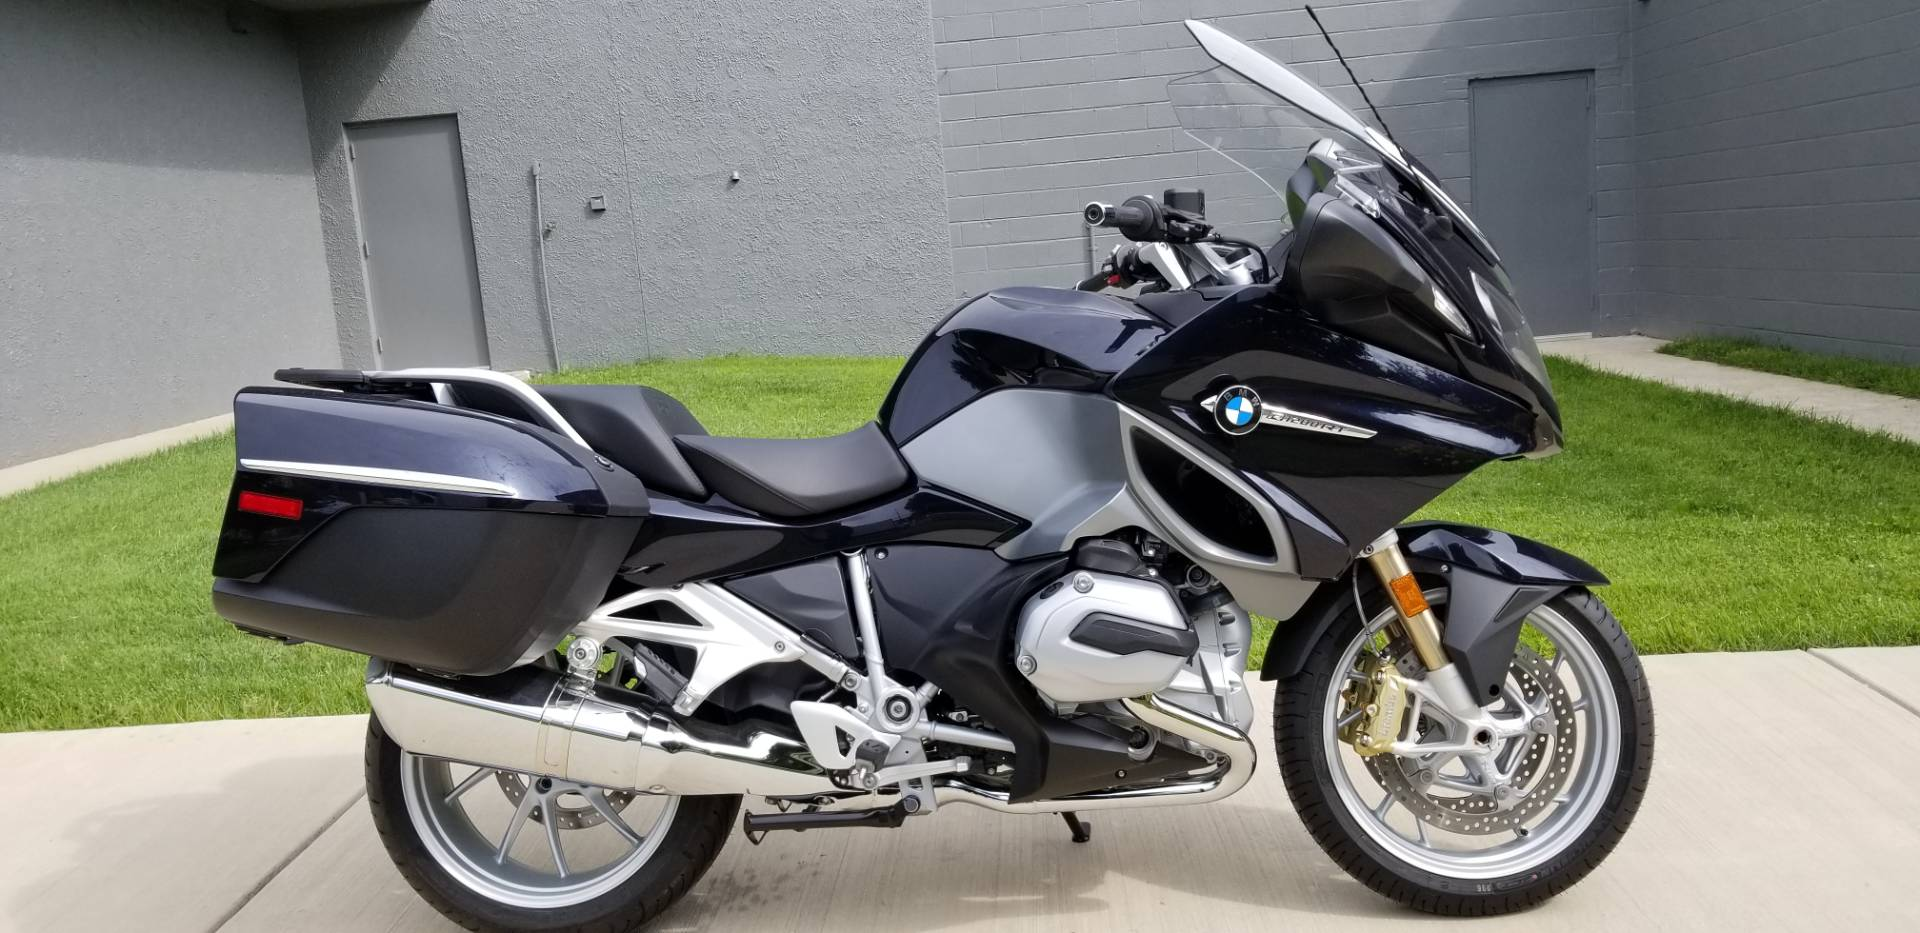 new 2017 bmw r 1200 rt motorcycles in gaithersburg md. Black Bedroom Furniture Sets. Home Design Ideas